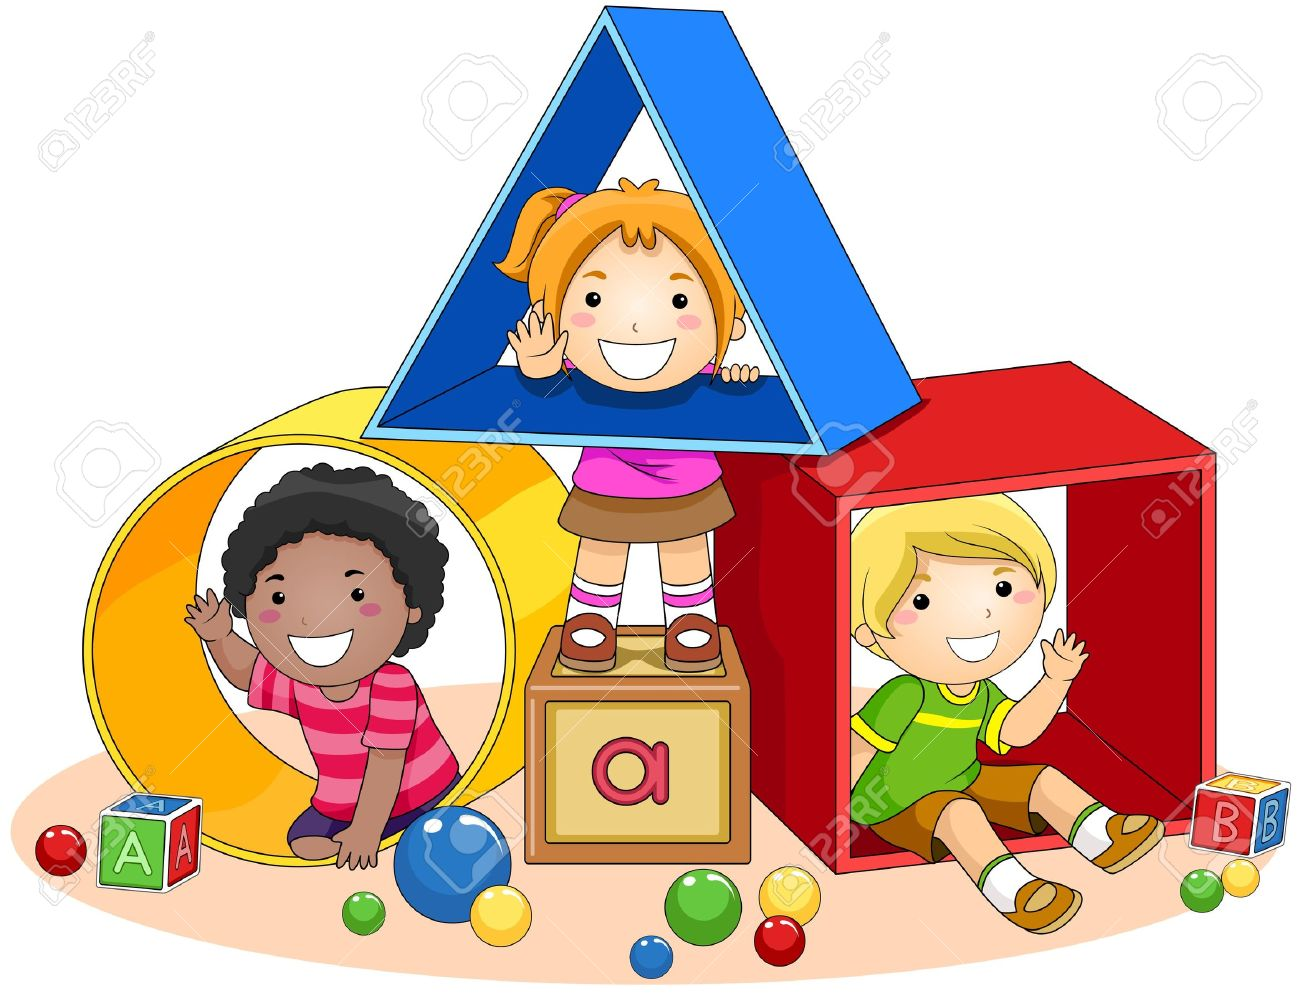 Child building with blocks clipart png black and white stock Children And Toy Blocks Stock Photo, Picture And Royalty Free ... png black and white stock